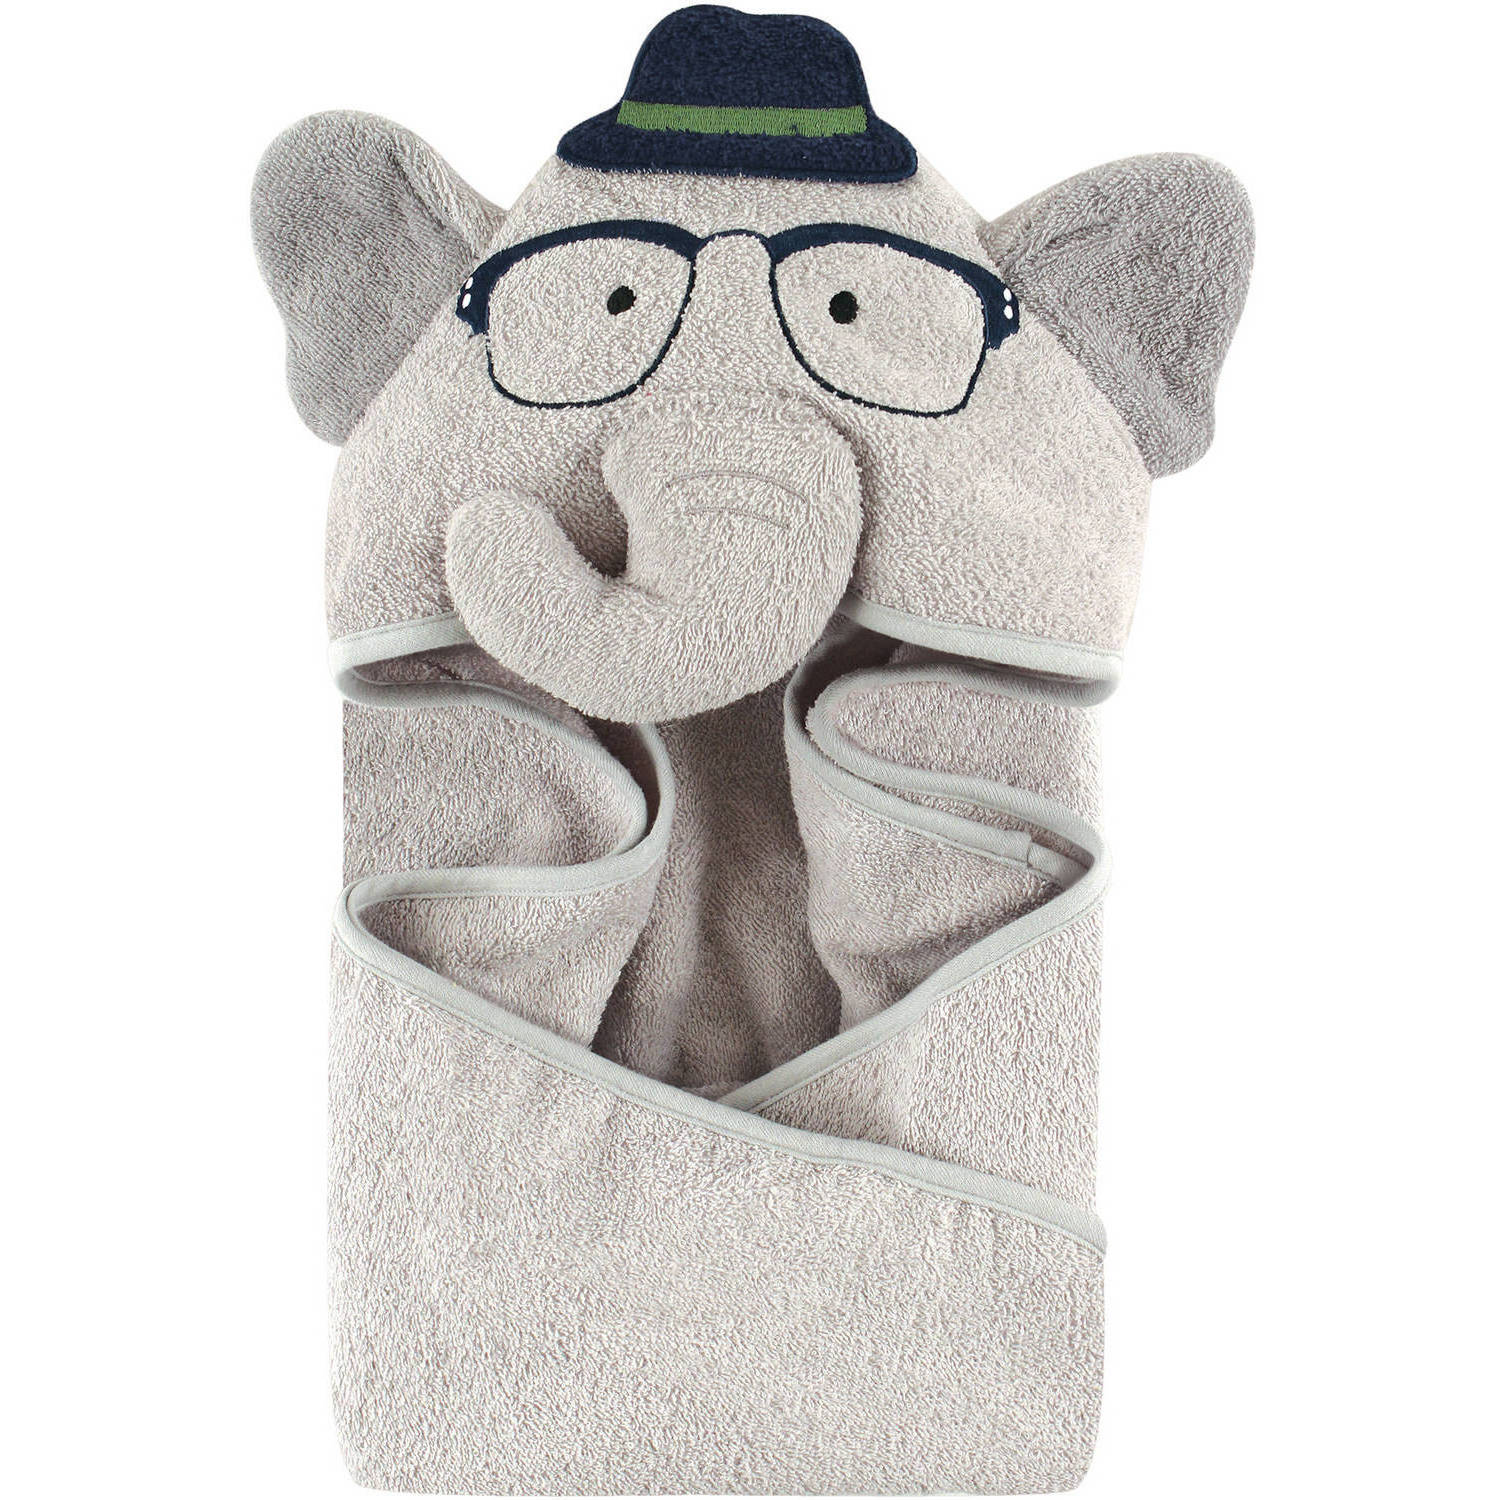 Hudson Baby Animal Hooded Towel, Smart Elephant